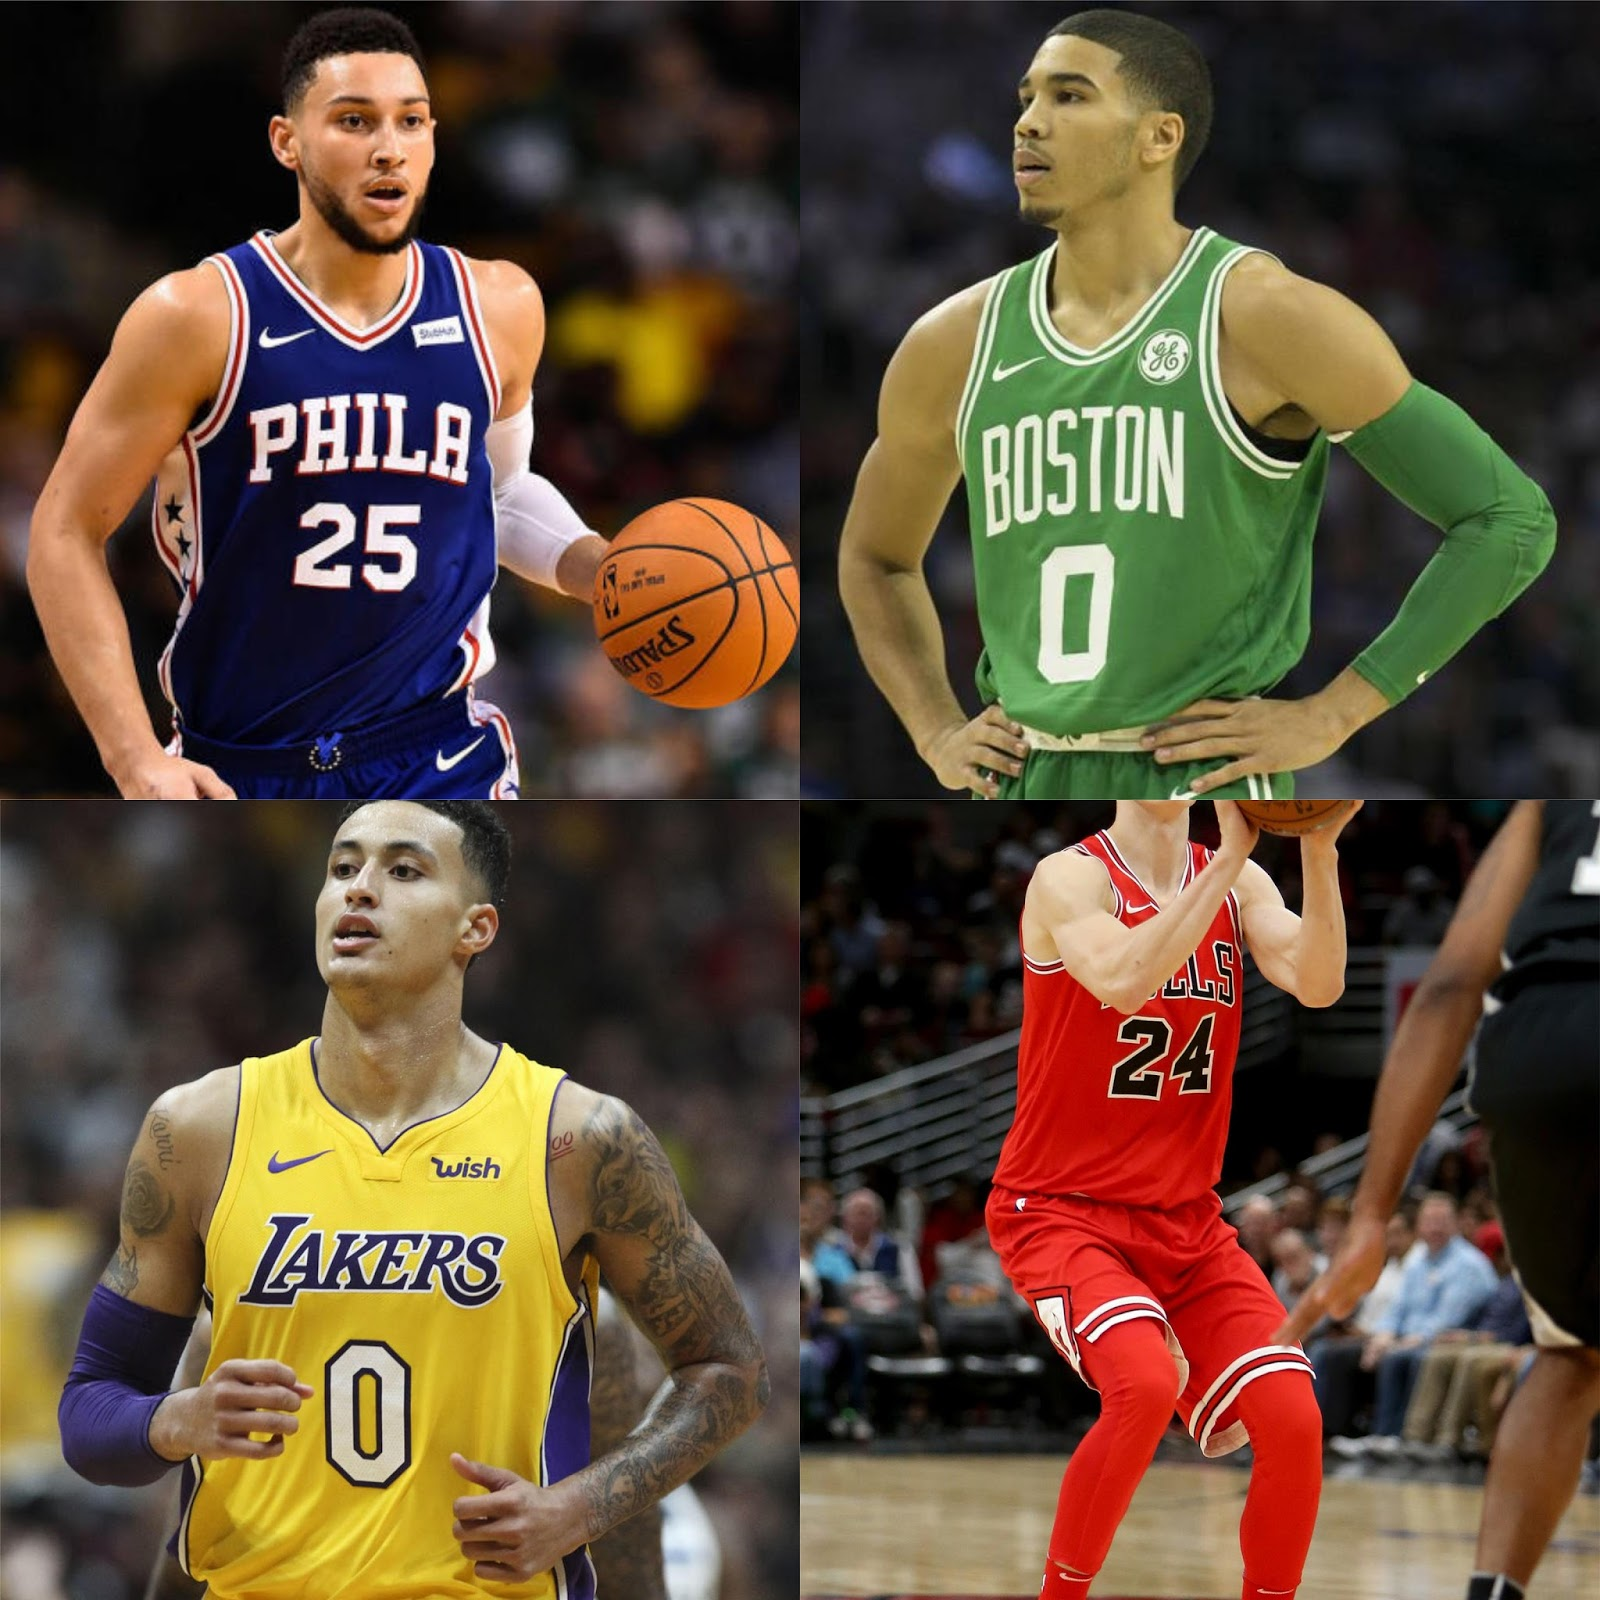 DAR Sports: The 8 Best NBA Rookies So Far This Season